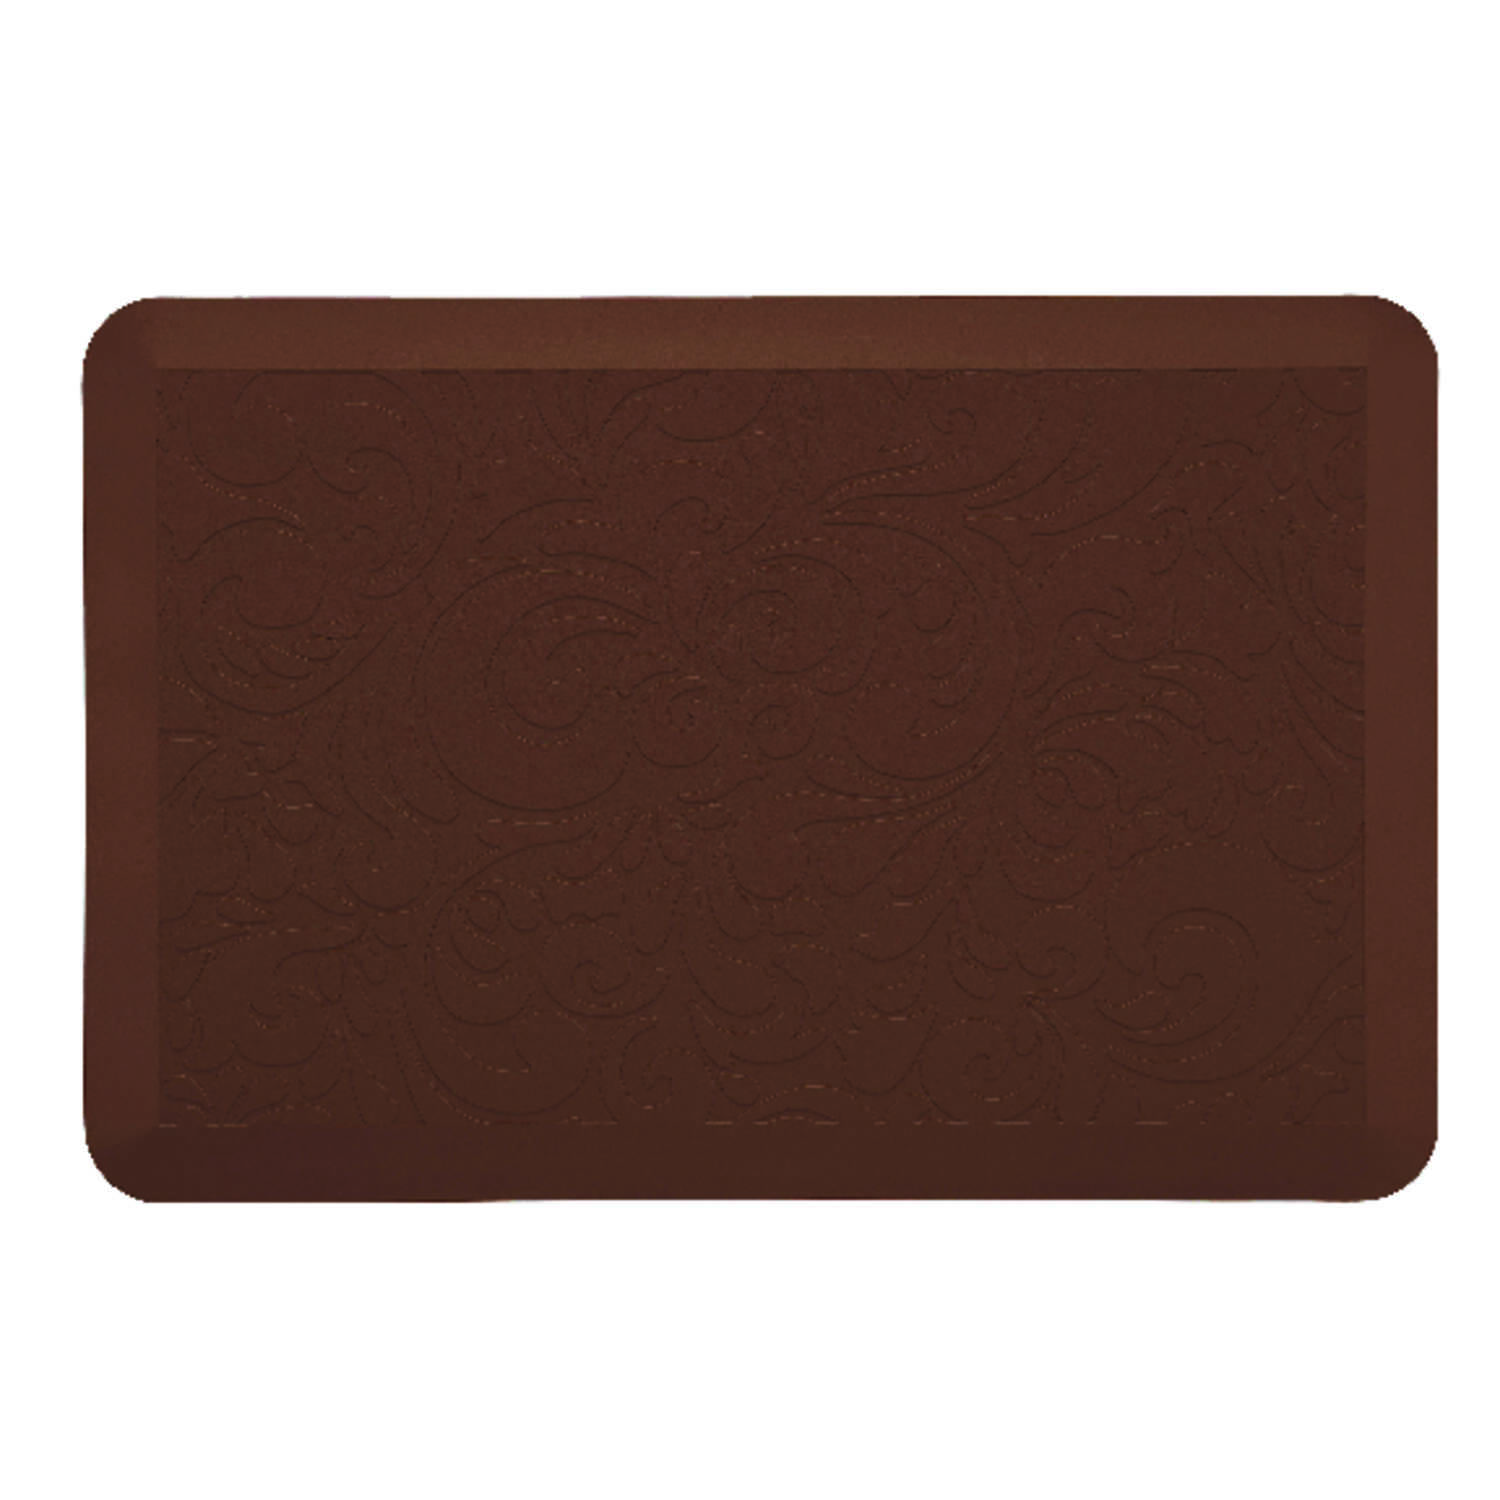 Comfort Co.  Brown  Polyurethane  Nonslip Anti Fatigue Mat  30 in. L x 20 in. W